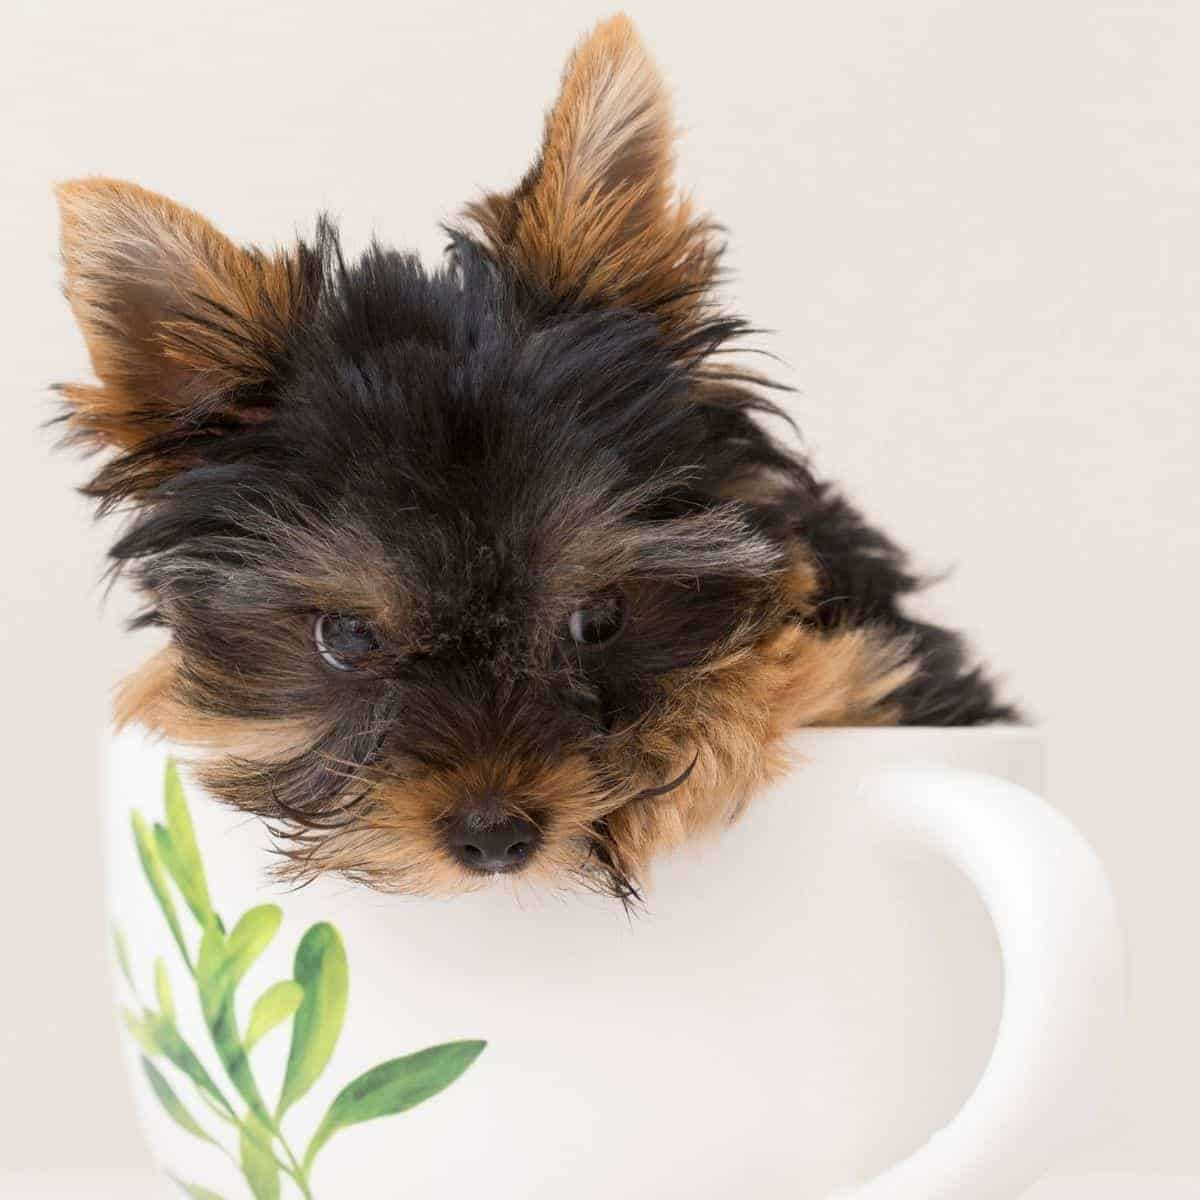 Small brown and black dog in a mug.